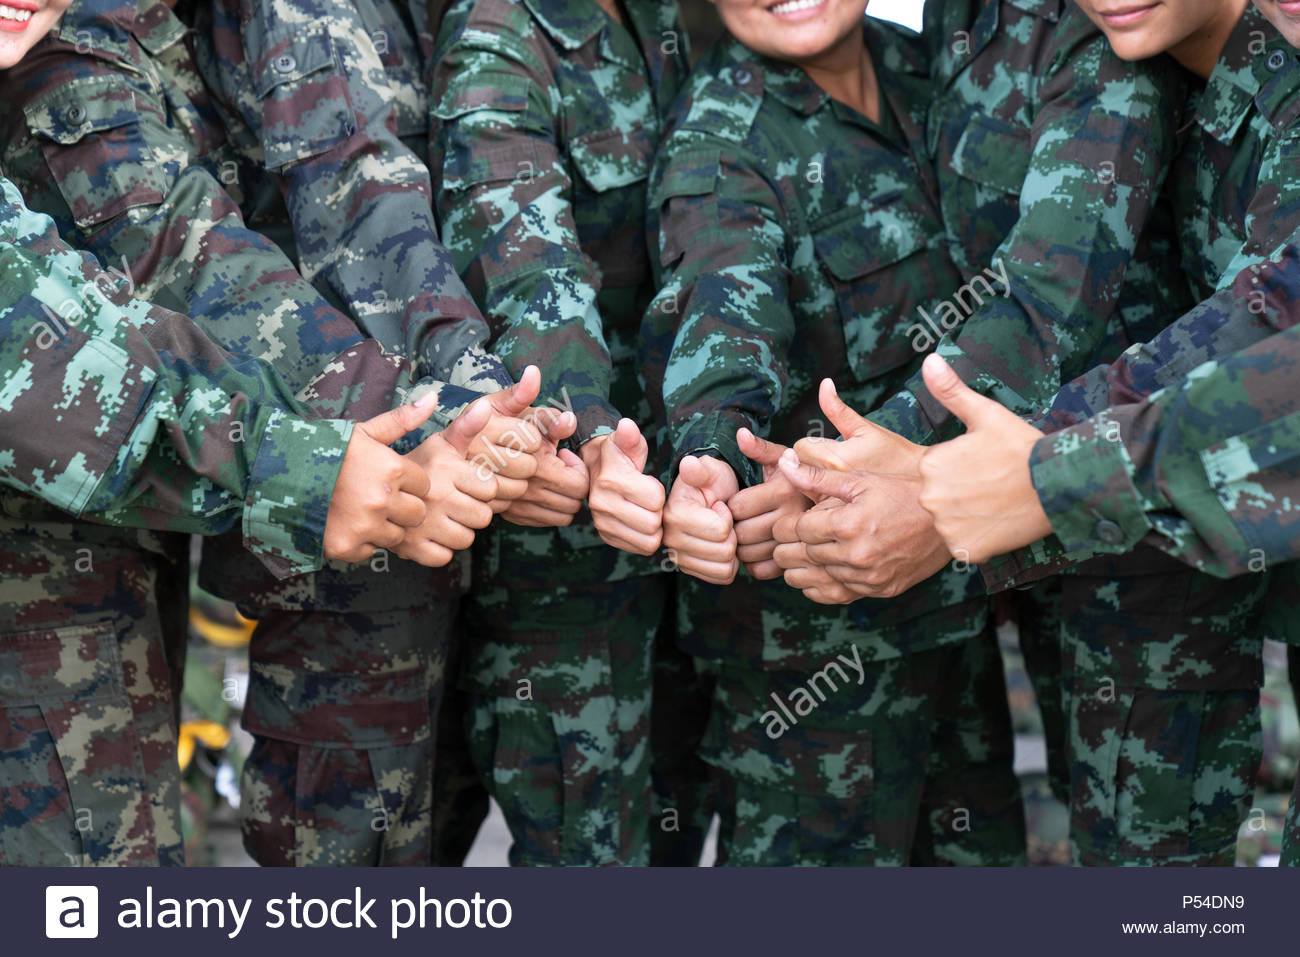 Soldier many thumbs up - Stock Image